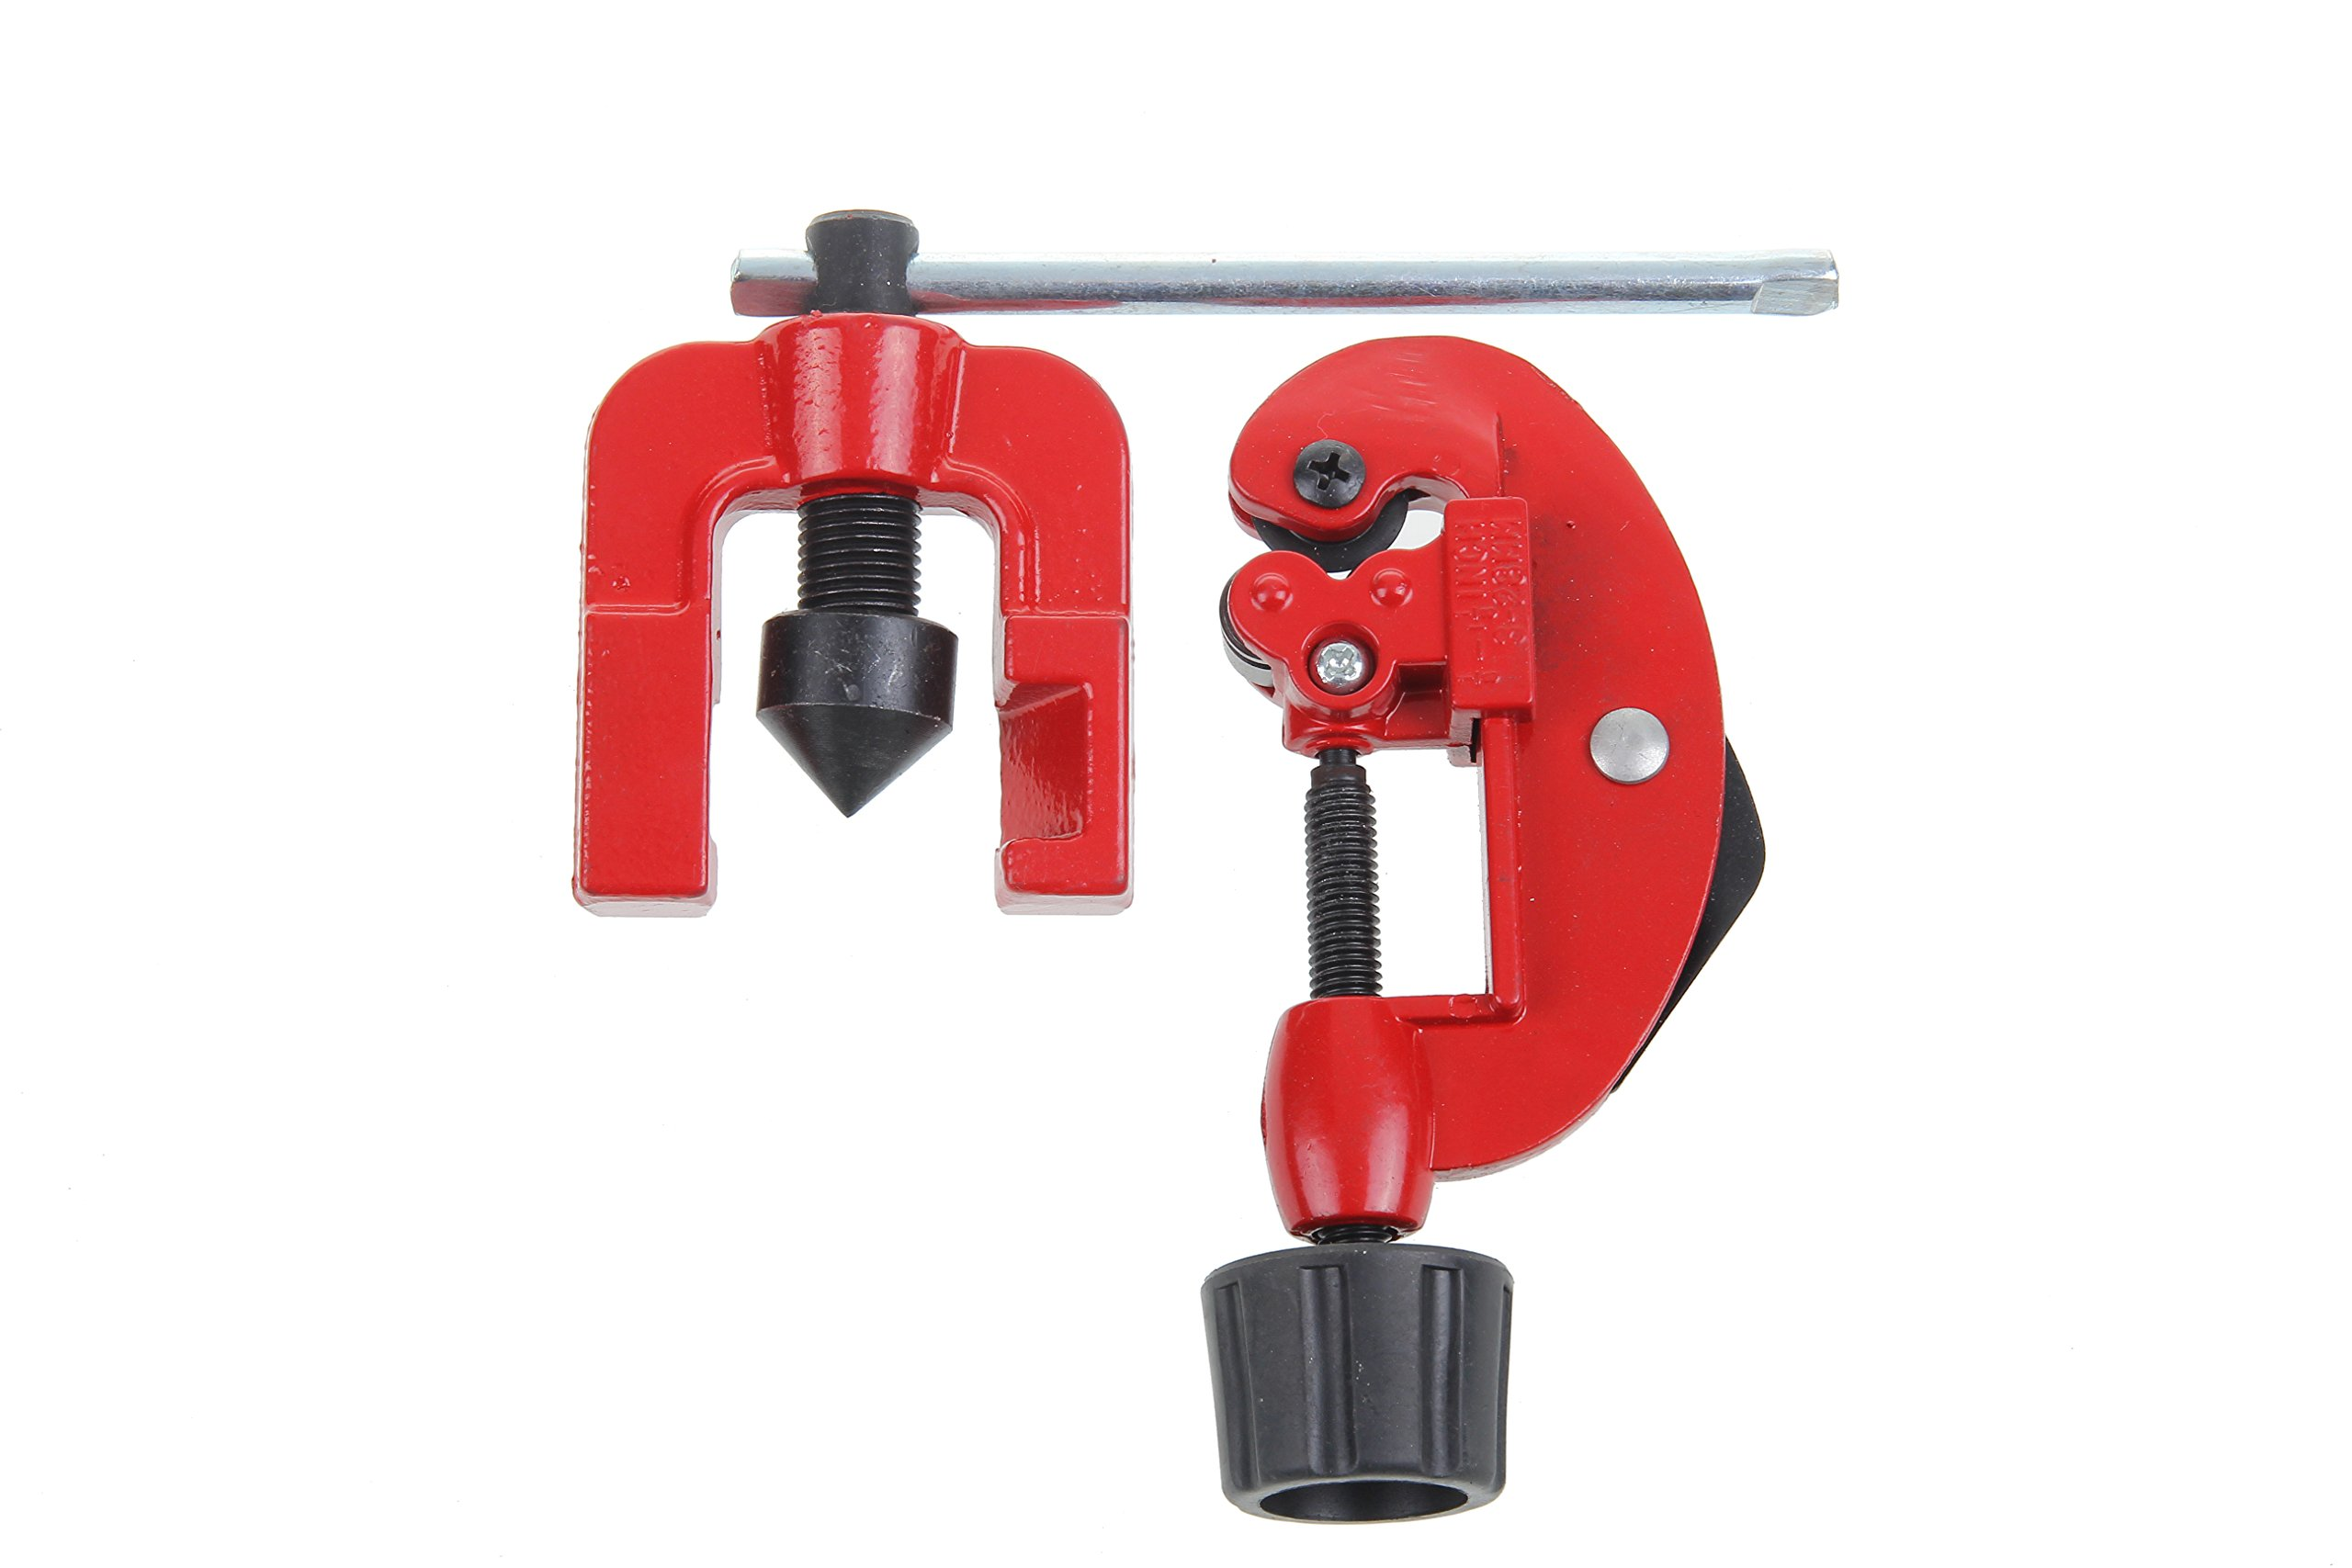 Shankly Flaring Tool Kit (7 Piece), Professional Tube Cutter & Flaring Tool Set by Shankly (Image #2)